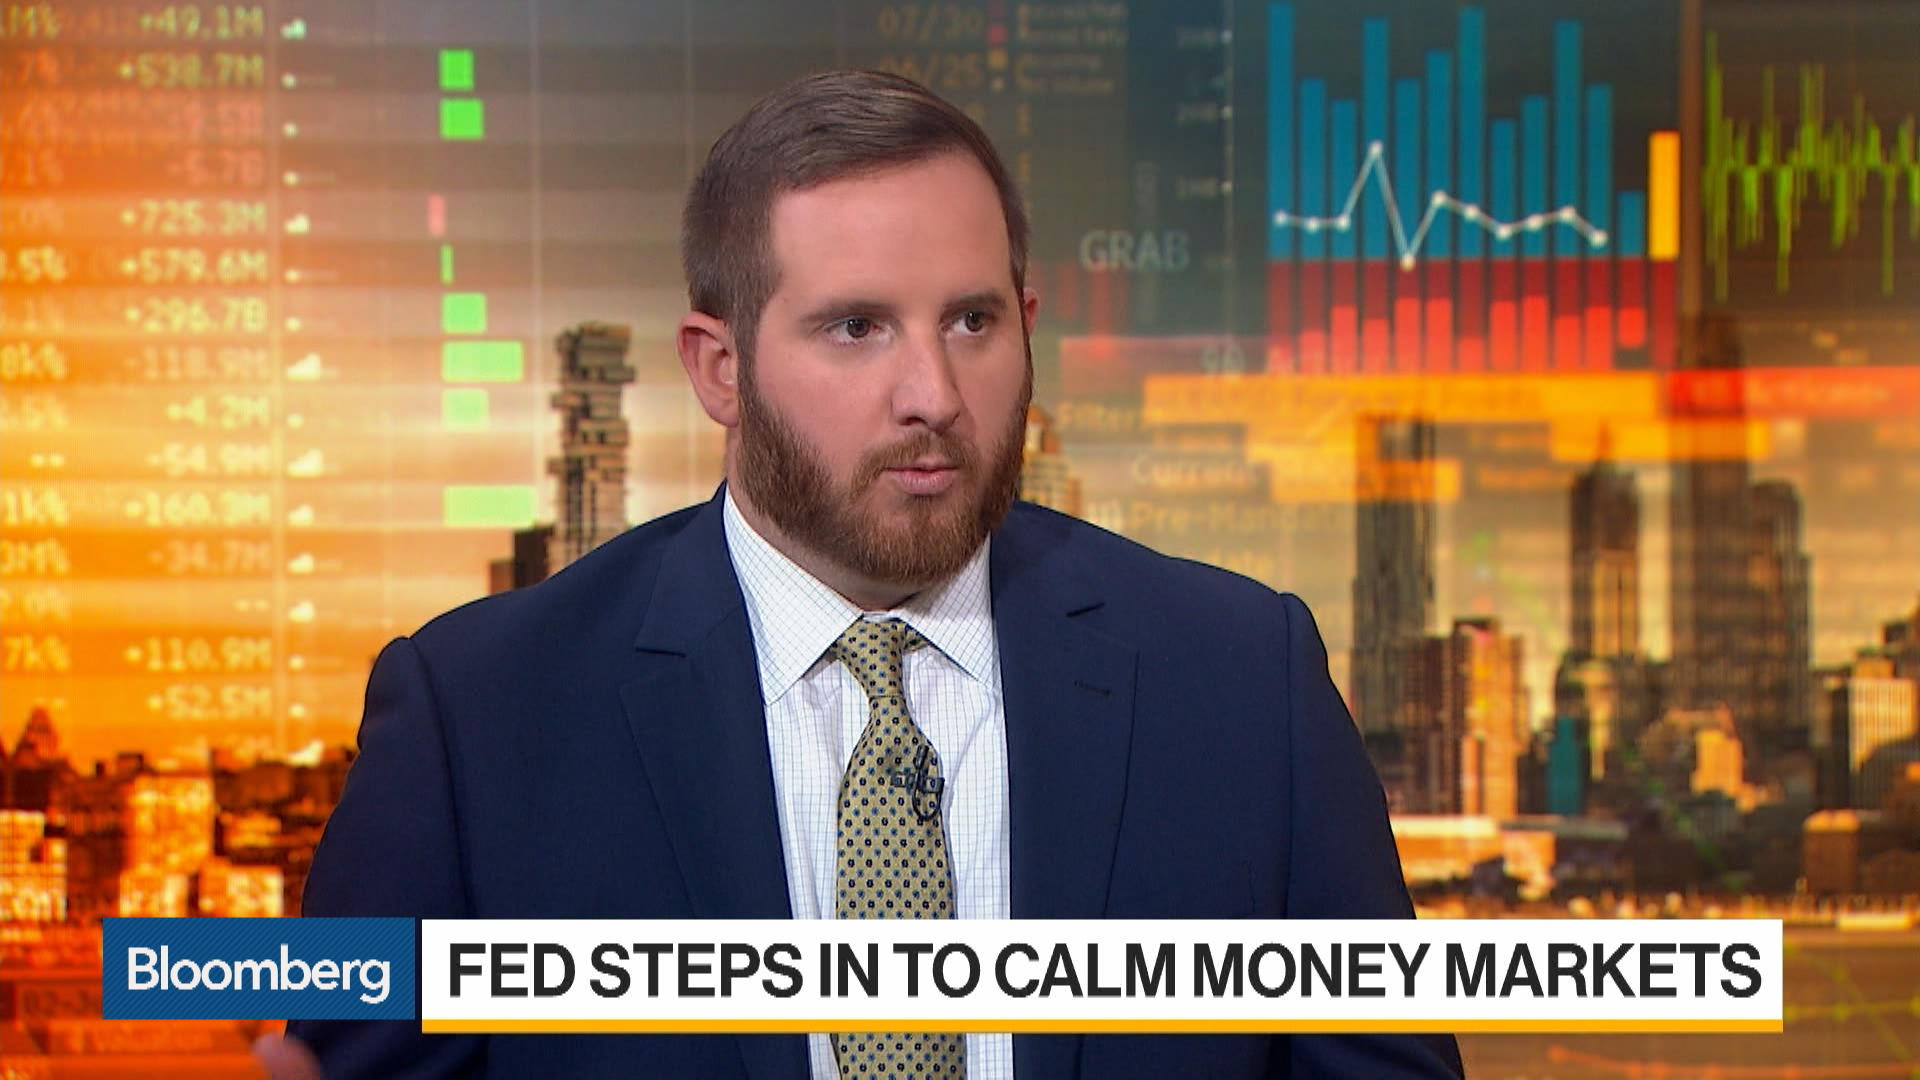 Wells Fargo Securities Rates Strategist Zachary Griffiths on Repo Rates Volatility, Market Outlook